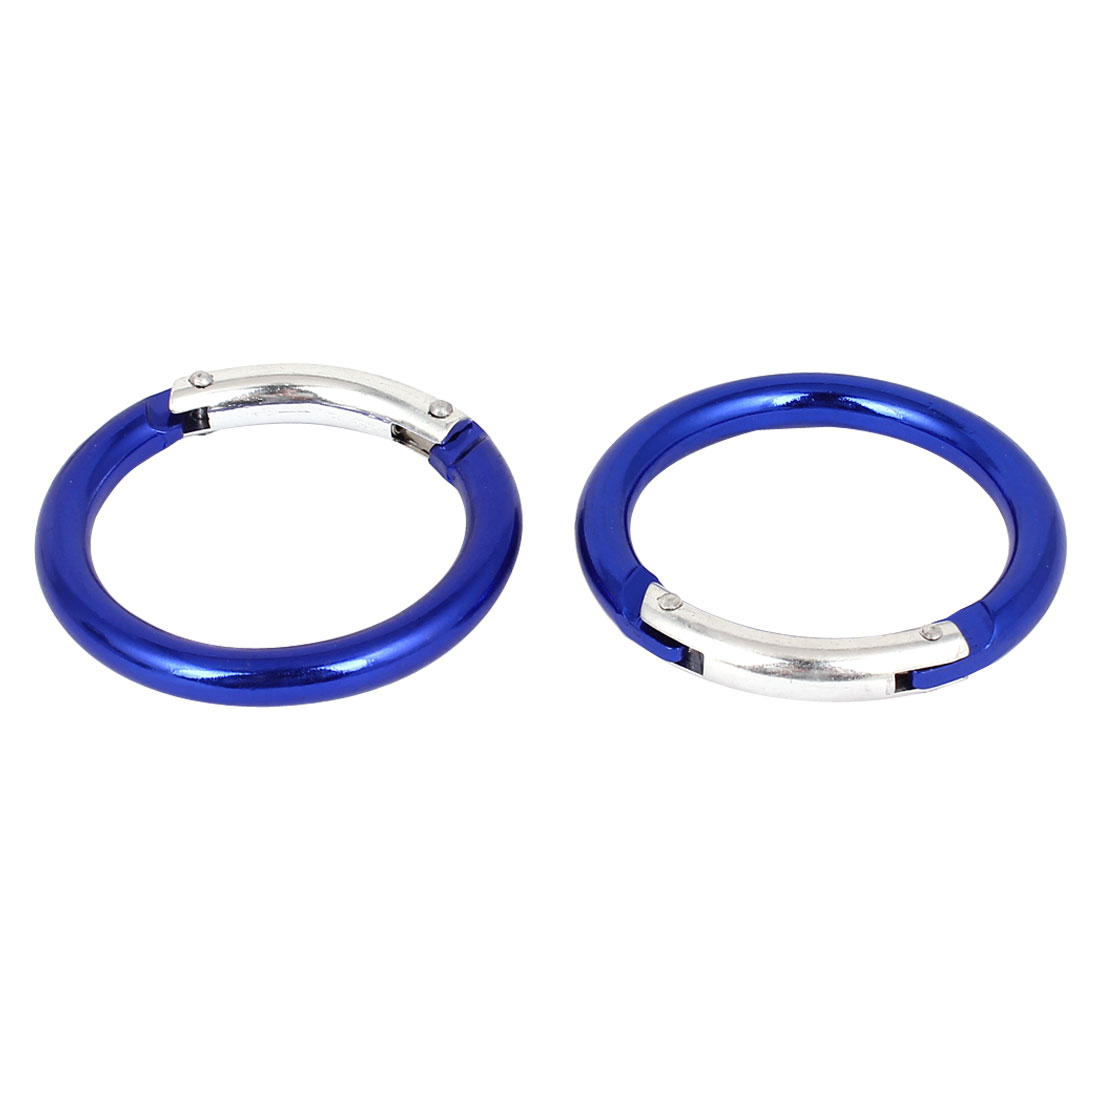 Outdoor Activitie Pratical Metal Round Shaped Portable Carabiner Blue 2pcs